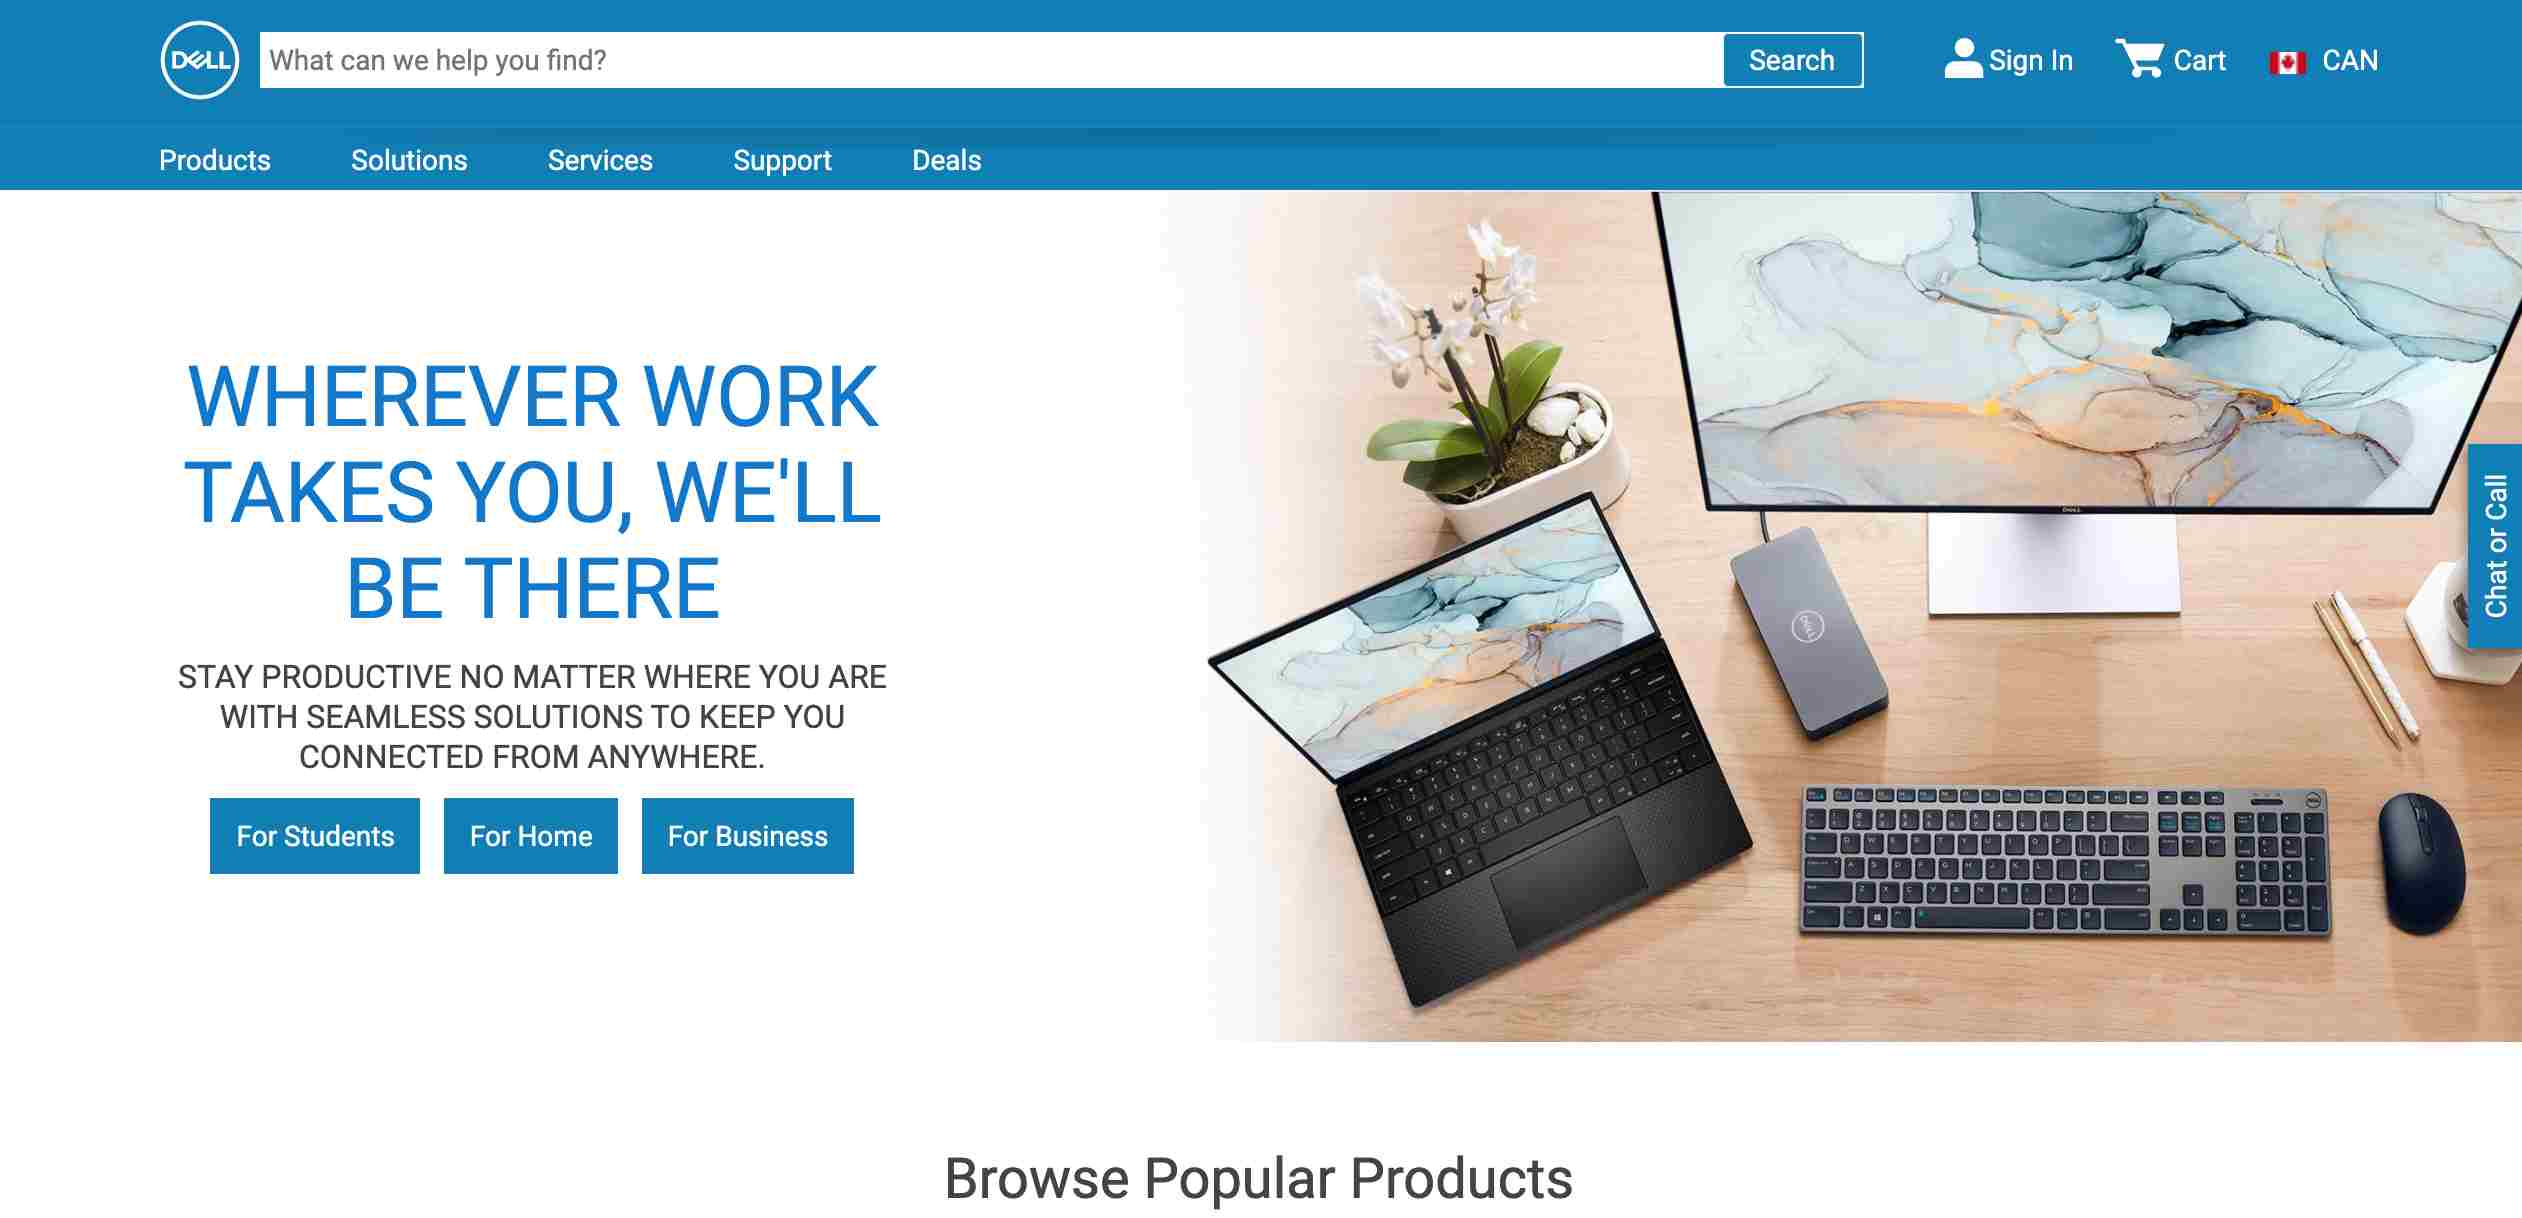 Dell new website design